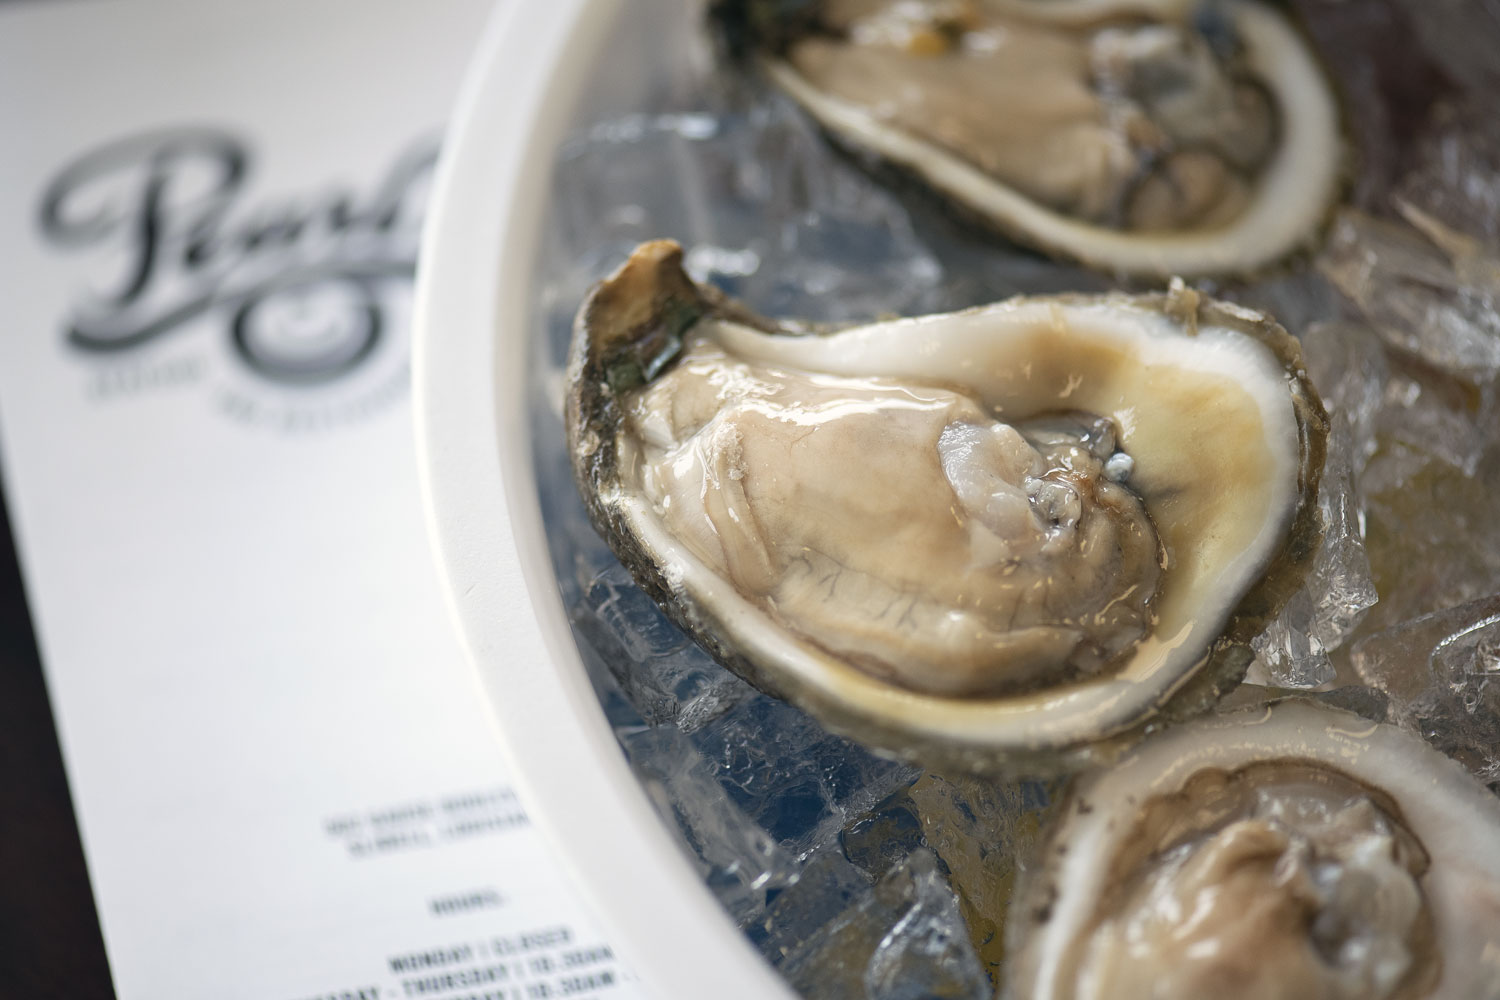 Raw oysters on the half shell at Pearl's Seafood in Slidell, photography by Cerberus Agency